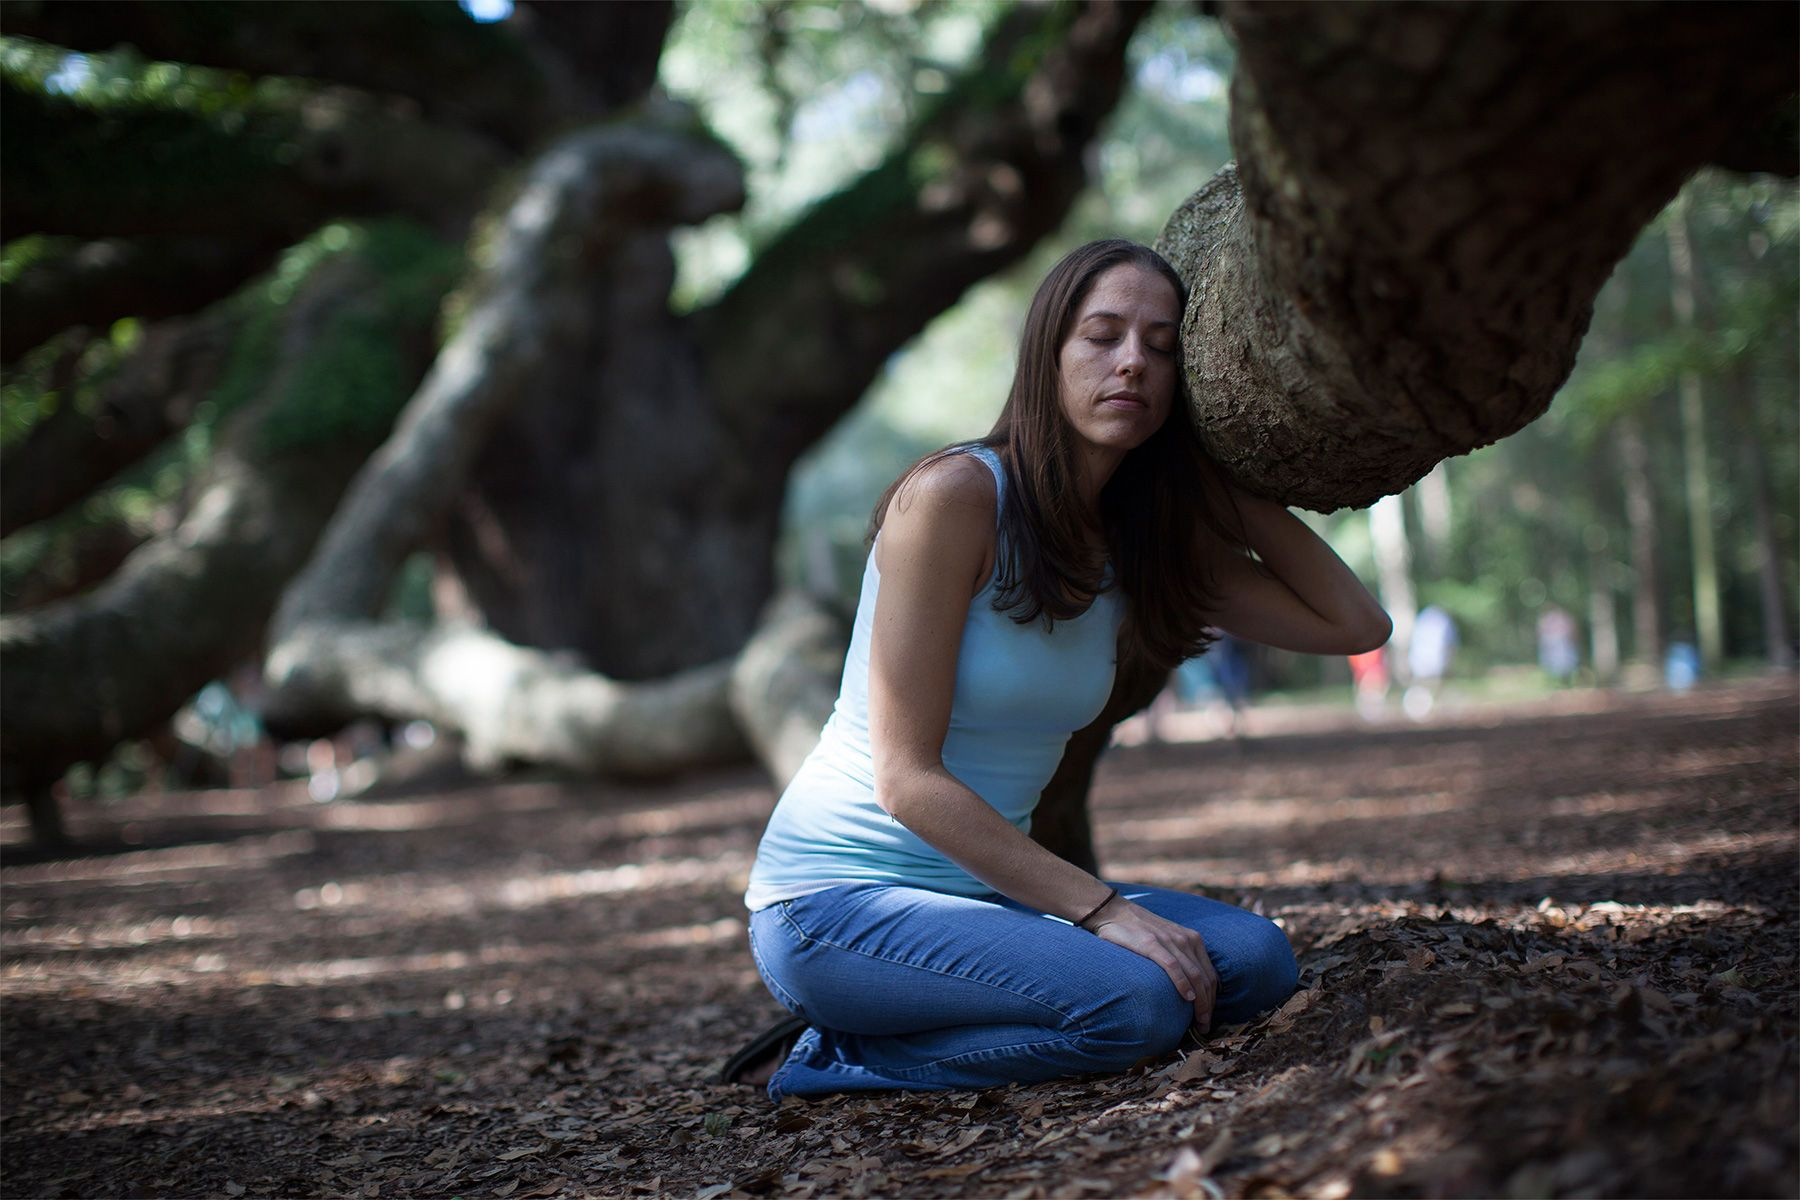 Samantha Siegel, 31, organizer behind the grass roots Save the Angel Oak petition, poses in front of the Angel Oak tree in Charleston, South Carolina September 24, 2013. {quote}I've always credited the tree to saving me,{quote} said the self-proclaimed tree hugger. {quote}Now it was my time to help save the tree.{quote} Charleston's urban forester Danny Burbage believes the tree to be 400 to 500 years old and one of the oldest living things east of the Mississippi River.  REUTERS/Randall Hill  (UNITED STATES)